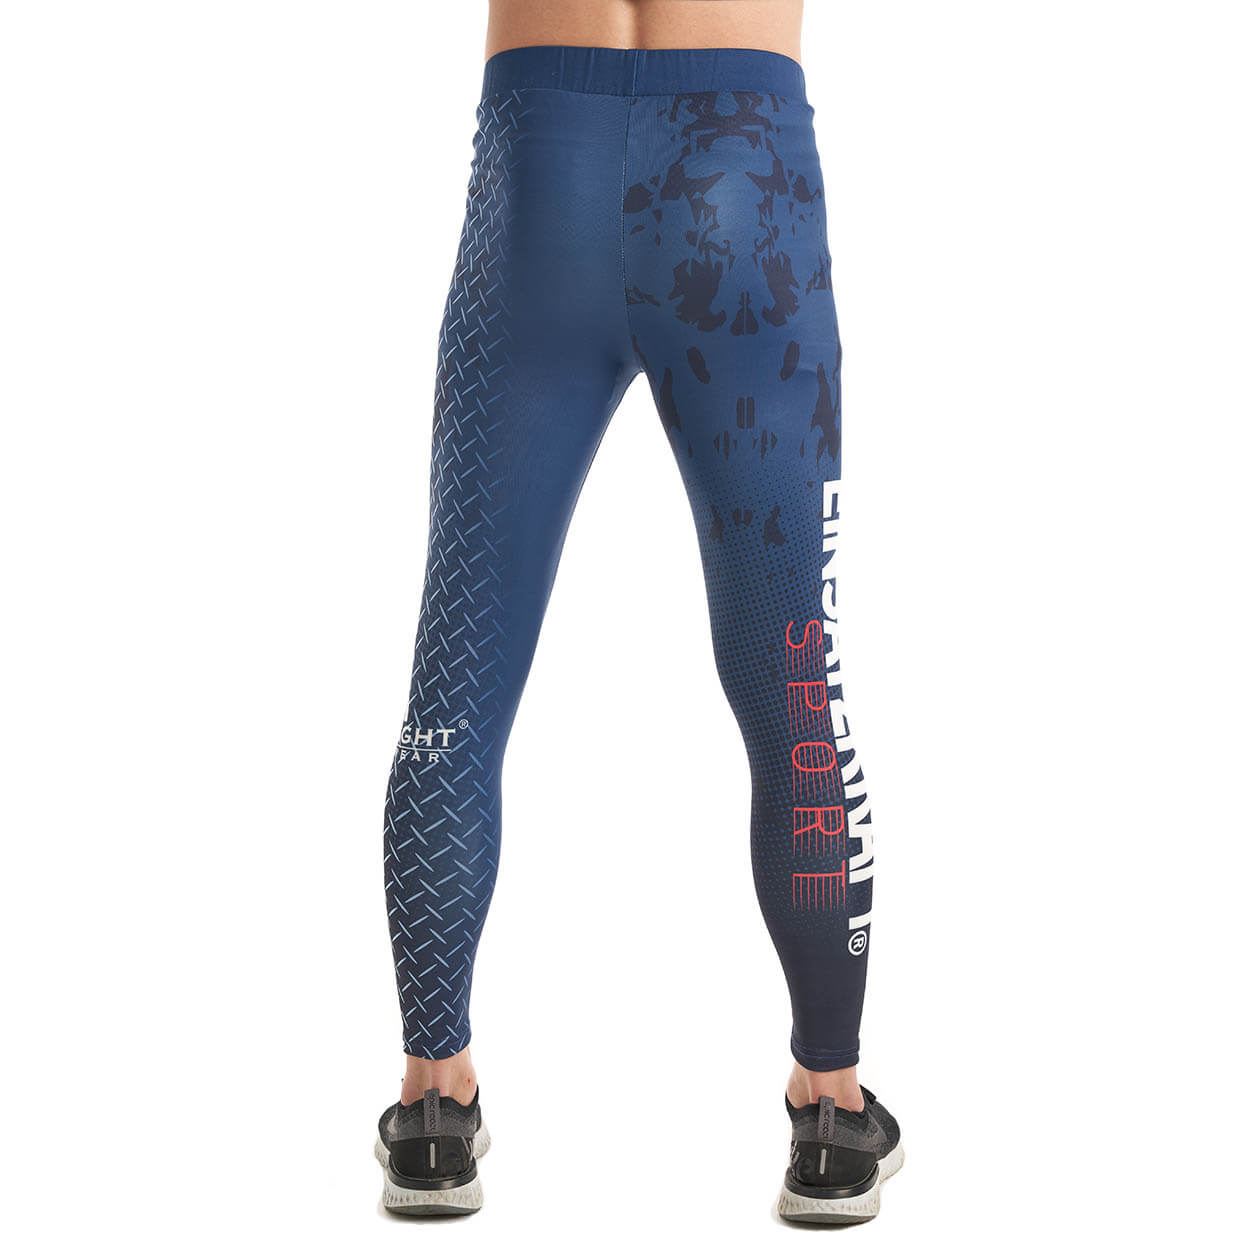 EINSATZKRAFT® Running Leggings